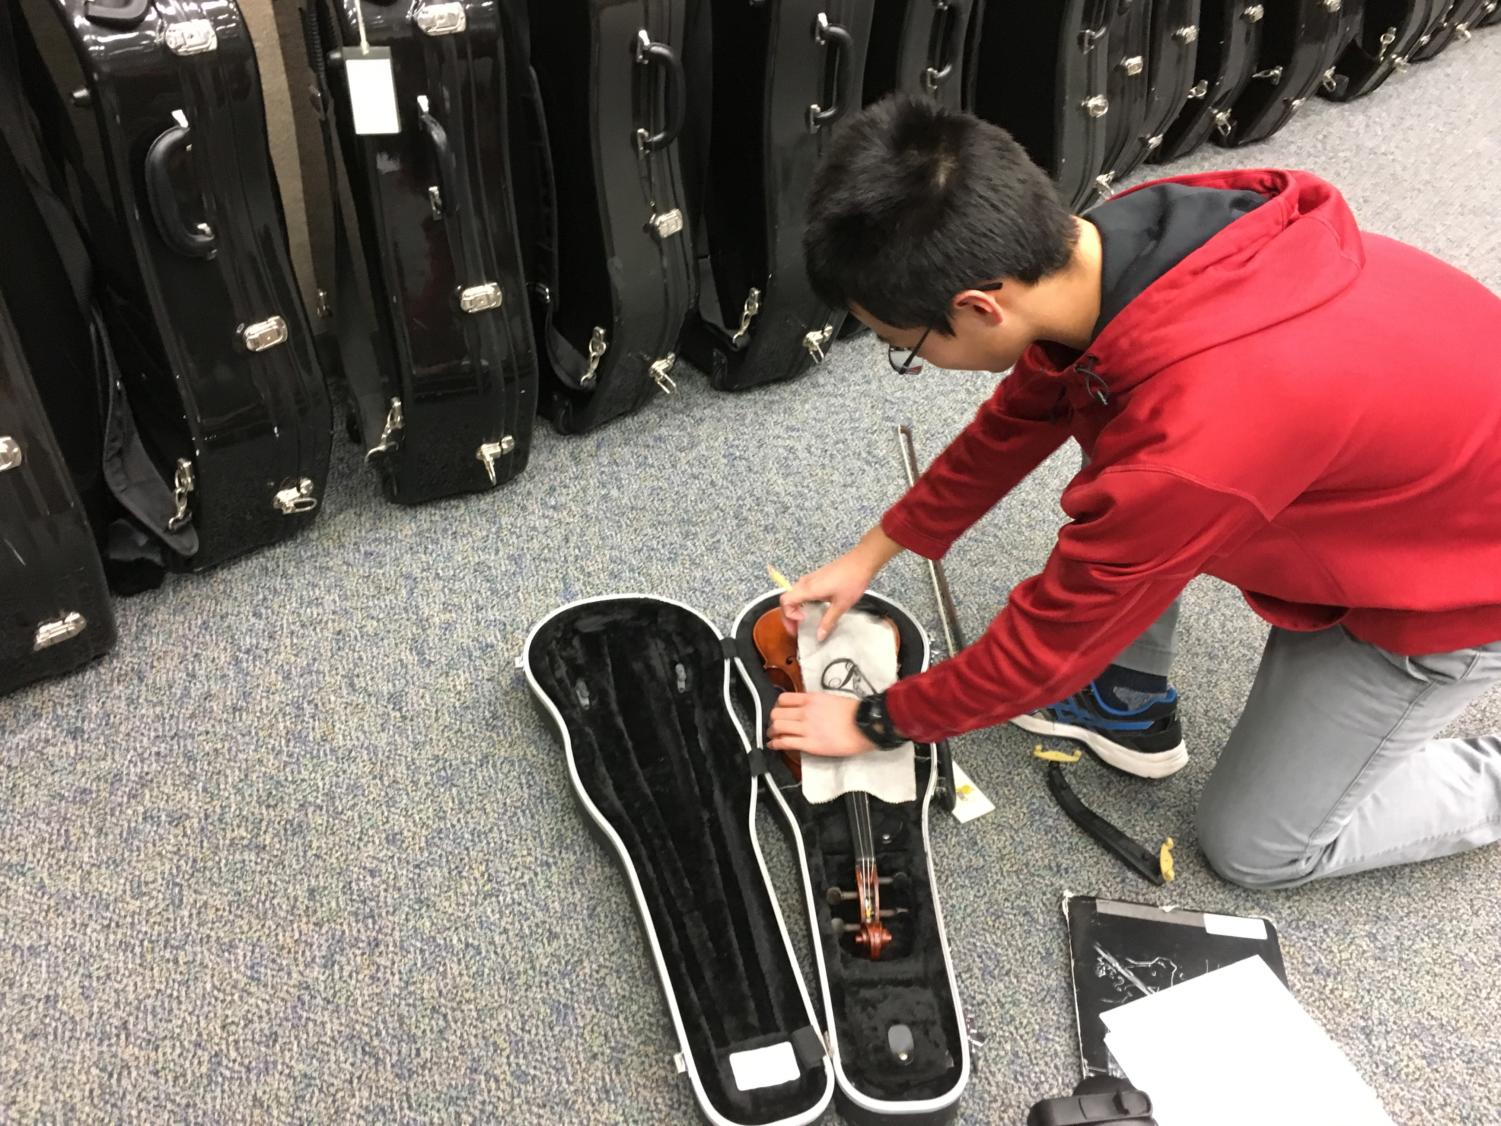 """Edward Dong, member of Philharmonic Orchestra and sophomore, packs up his violin at the end of the day. He said he has recently been preparing for the ISSMA (Indiana State Music Association) Competition and has benefited from the new practice recordings. """"ISSMA is basically our main priority now,"""" Dong said."""